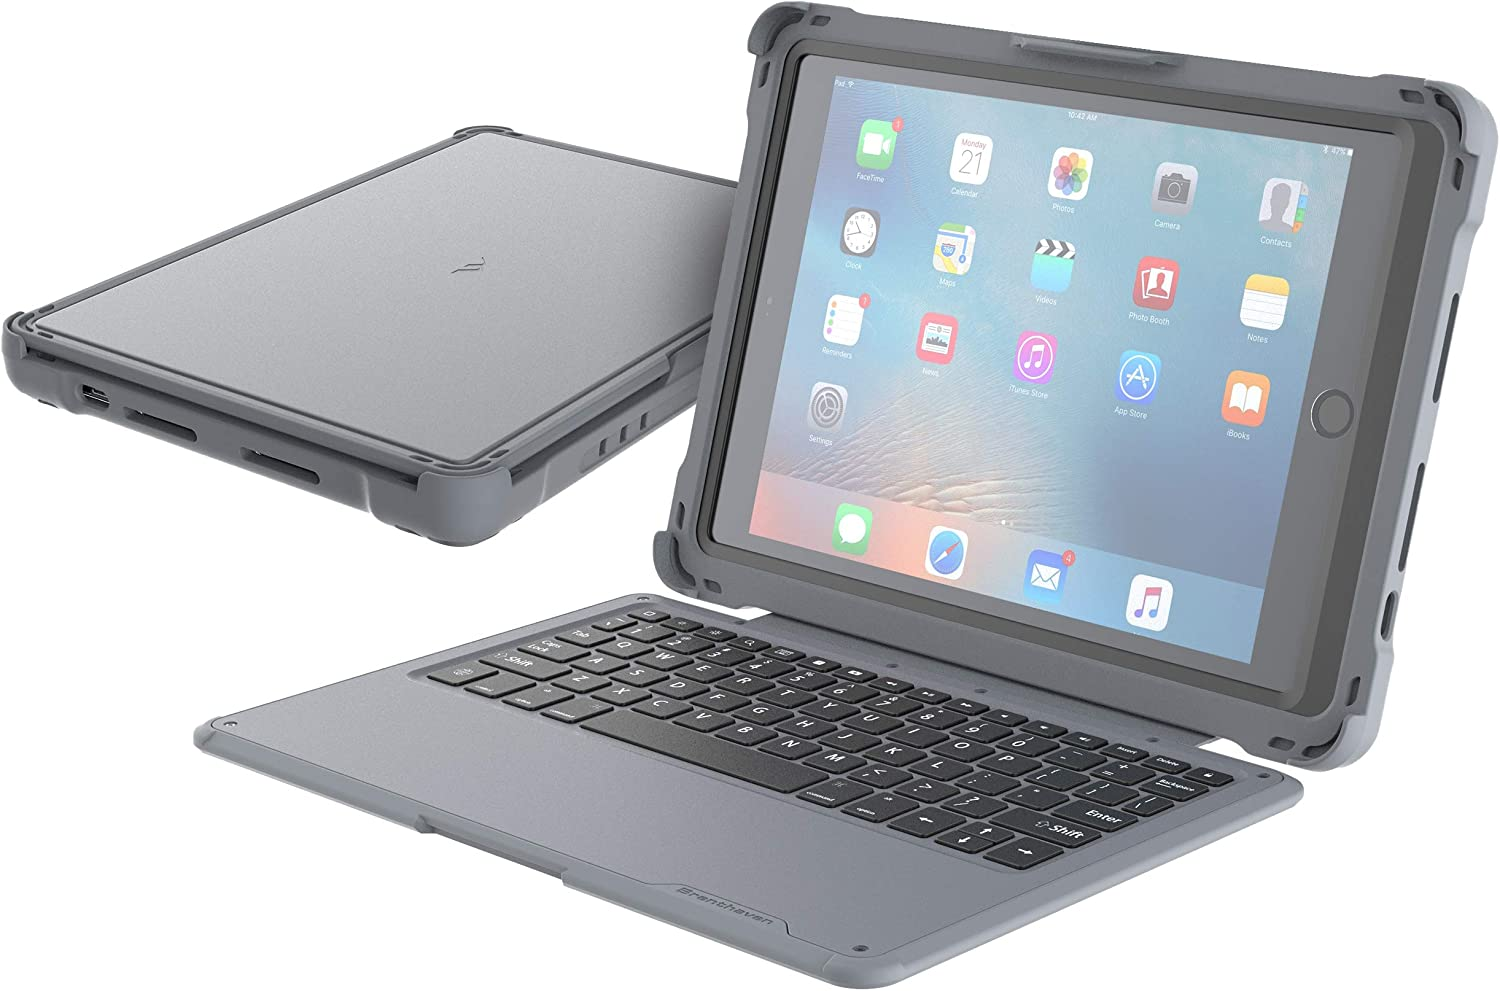 Brenthaven Edge Click-Connect Keyboard Case for Apple iPad 9.7 (5th Gen & 6th Gen) for School and Office Use - Durable, Rugged Protection with Keyboard and Stand